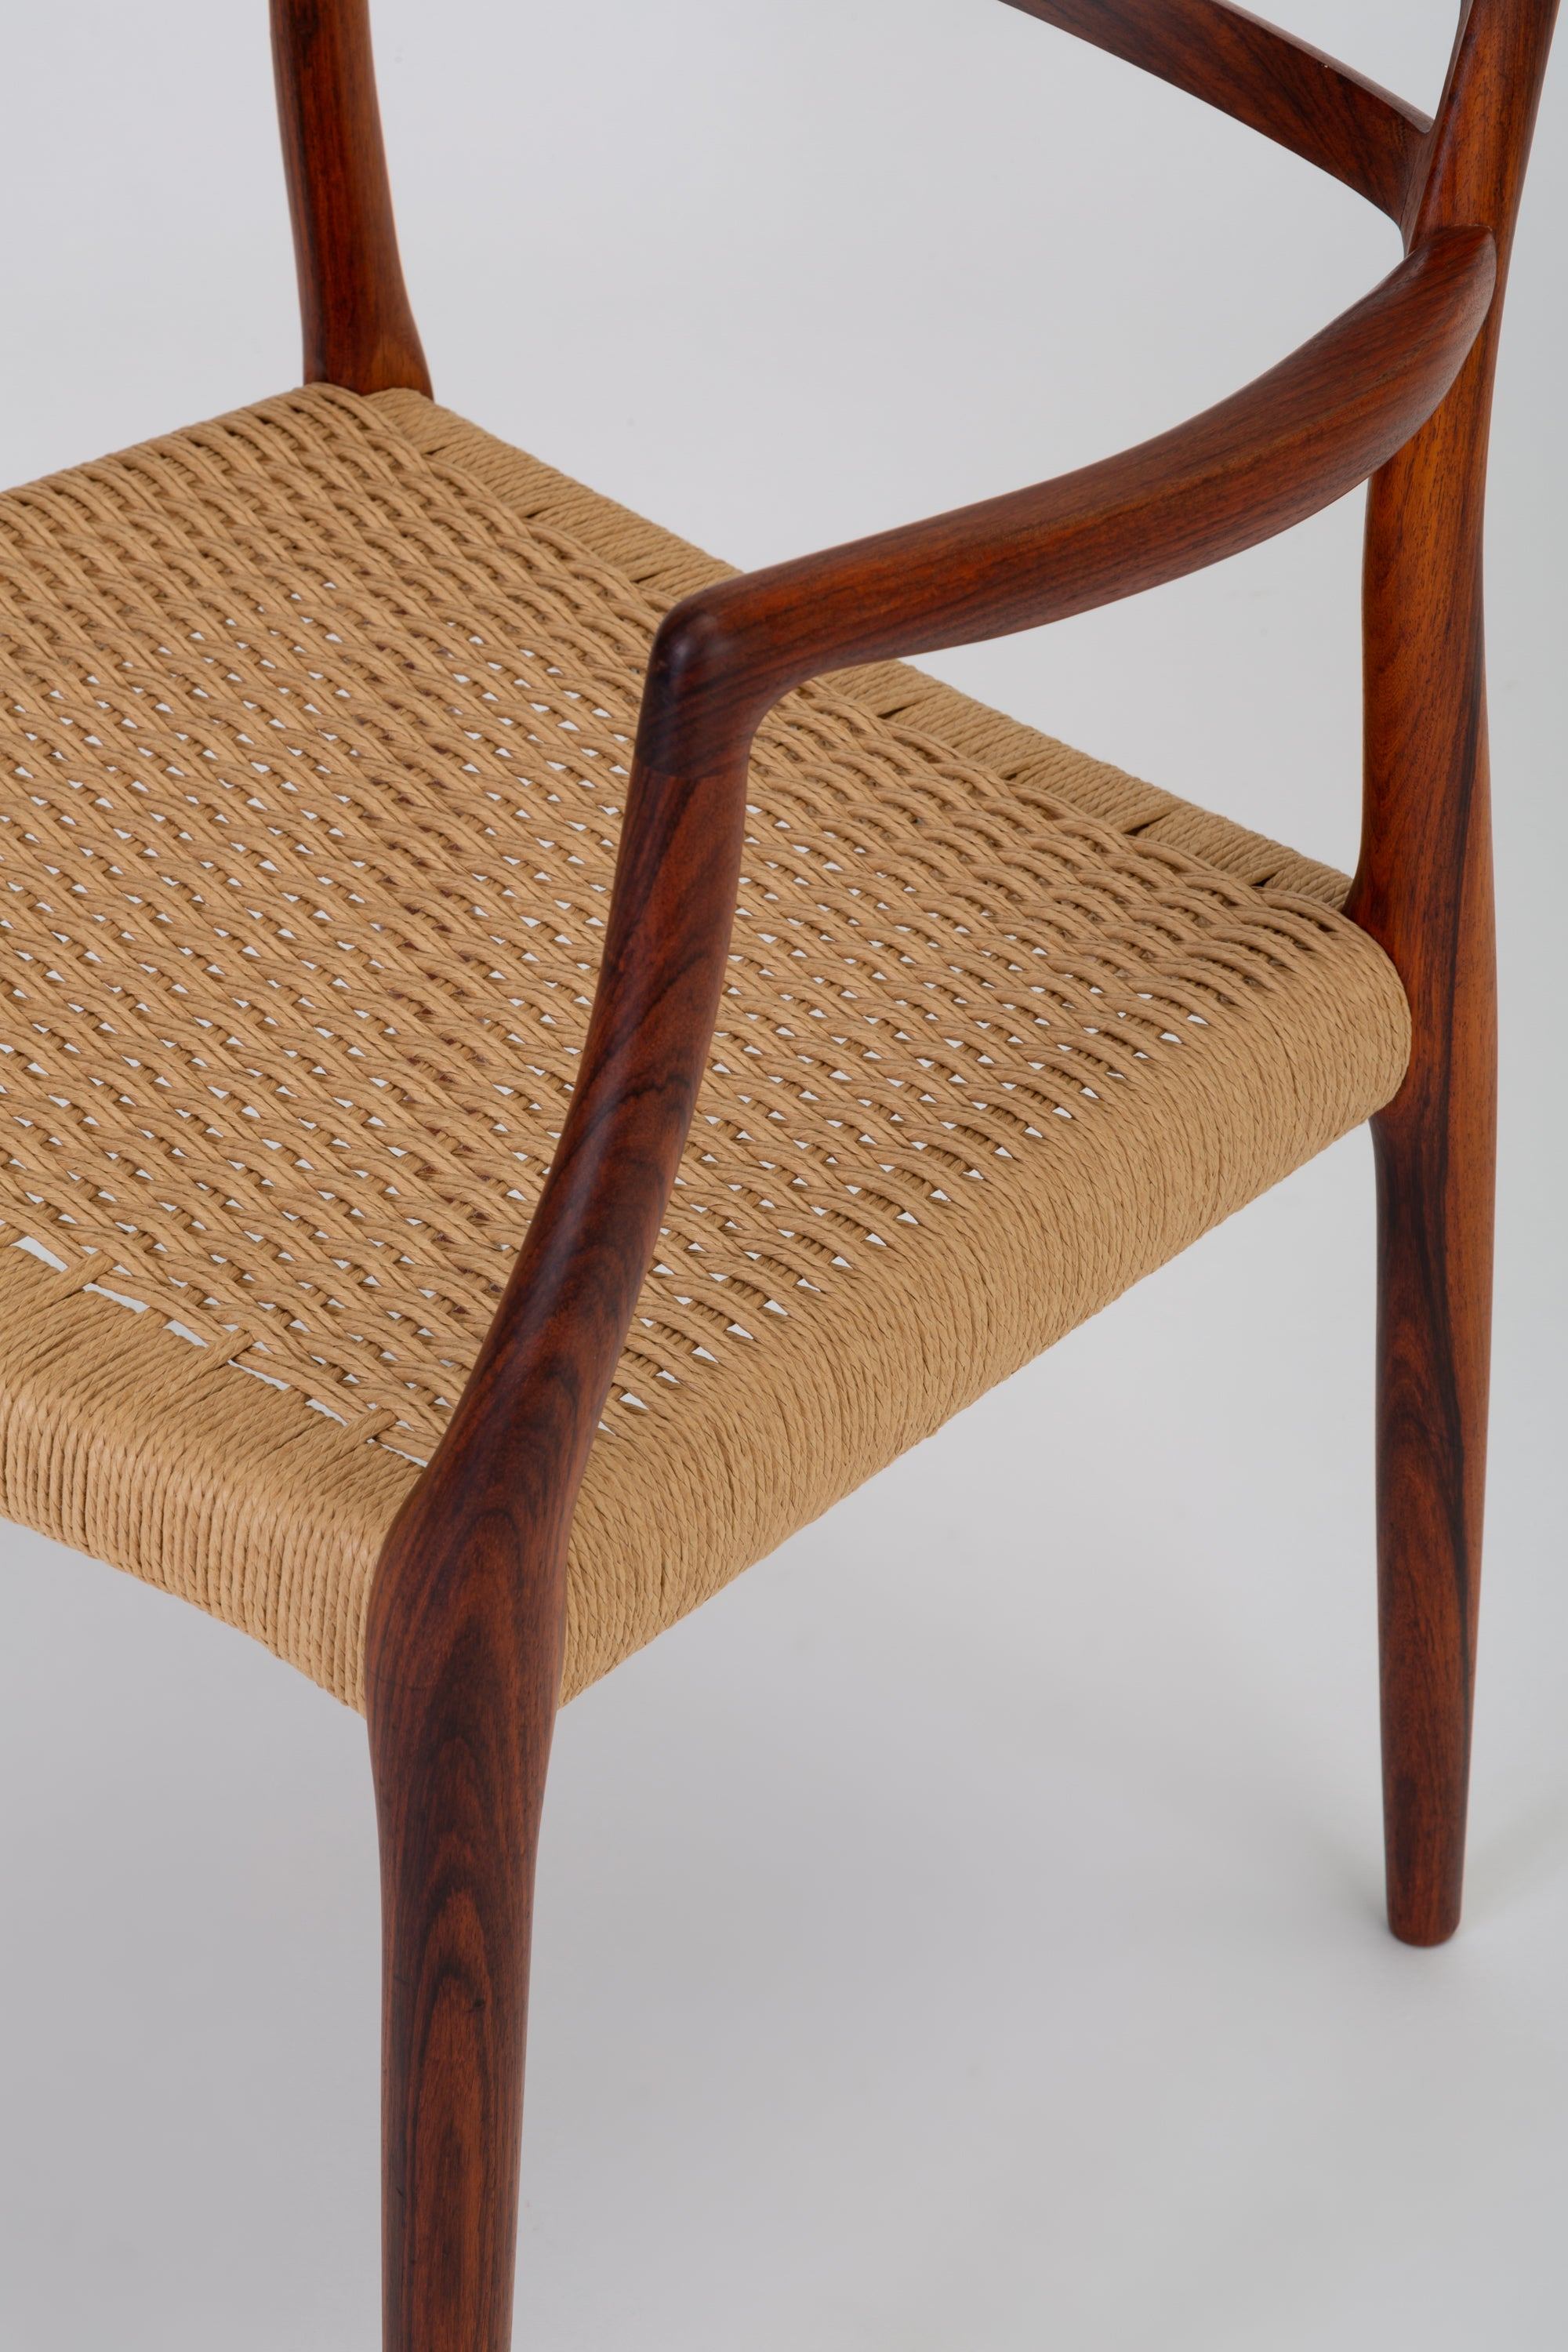 Set of Six Model 78 Rosewood Dining Chairs by N.O. M ller